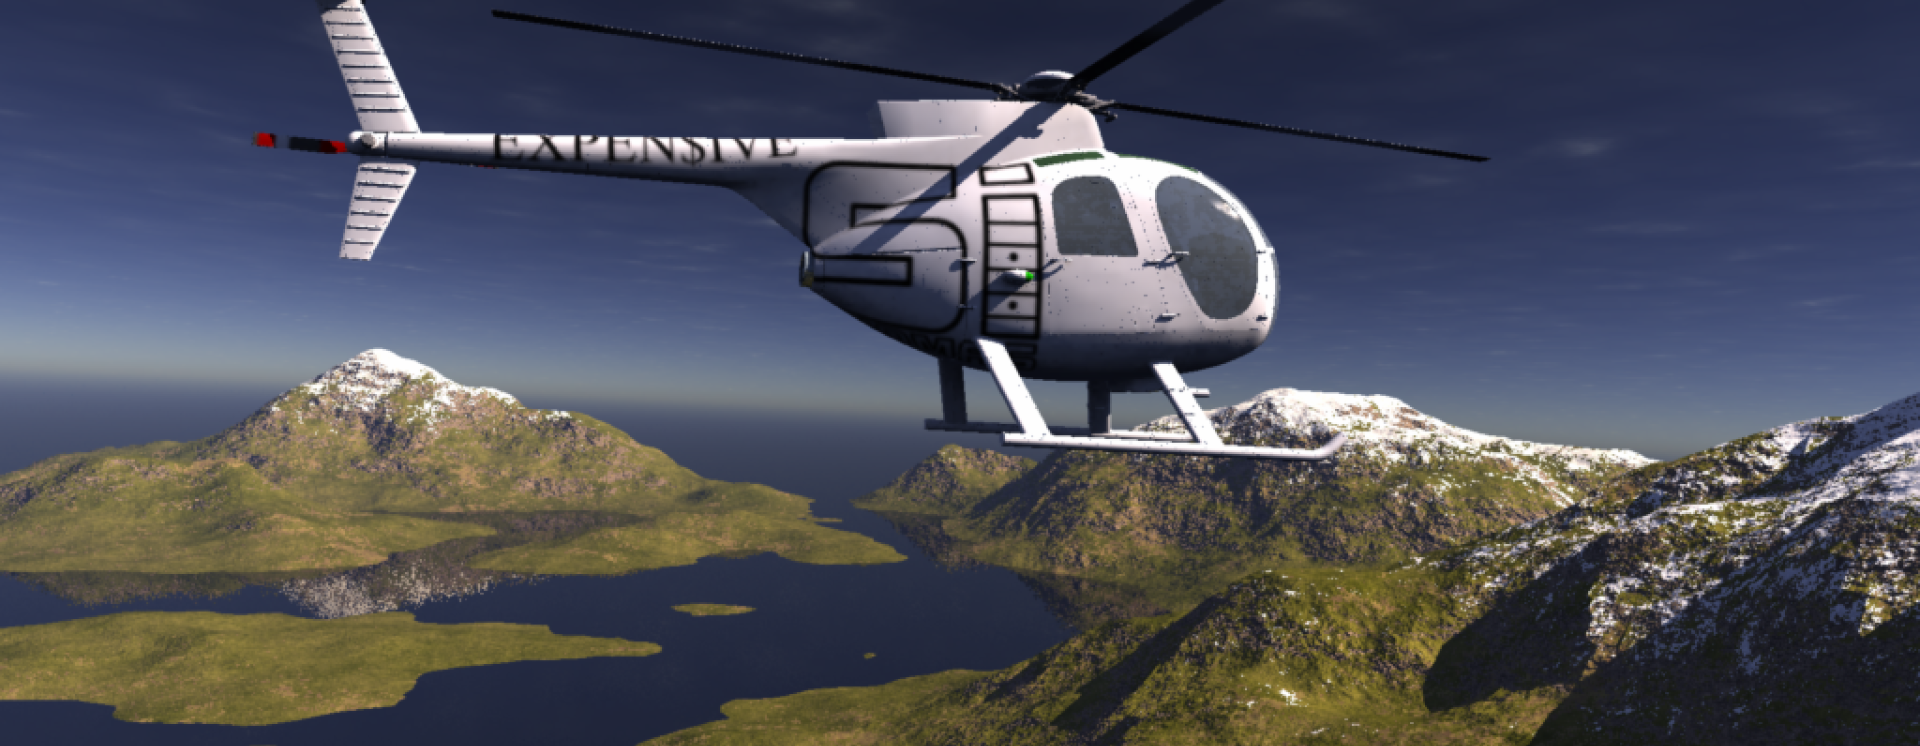 Helicopter 004 copy